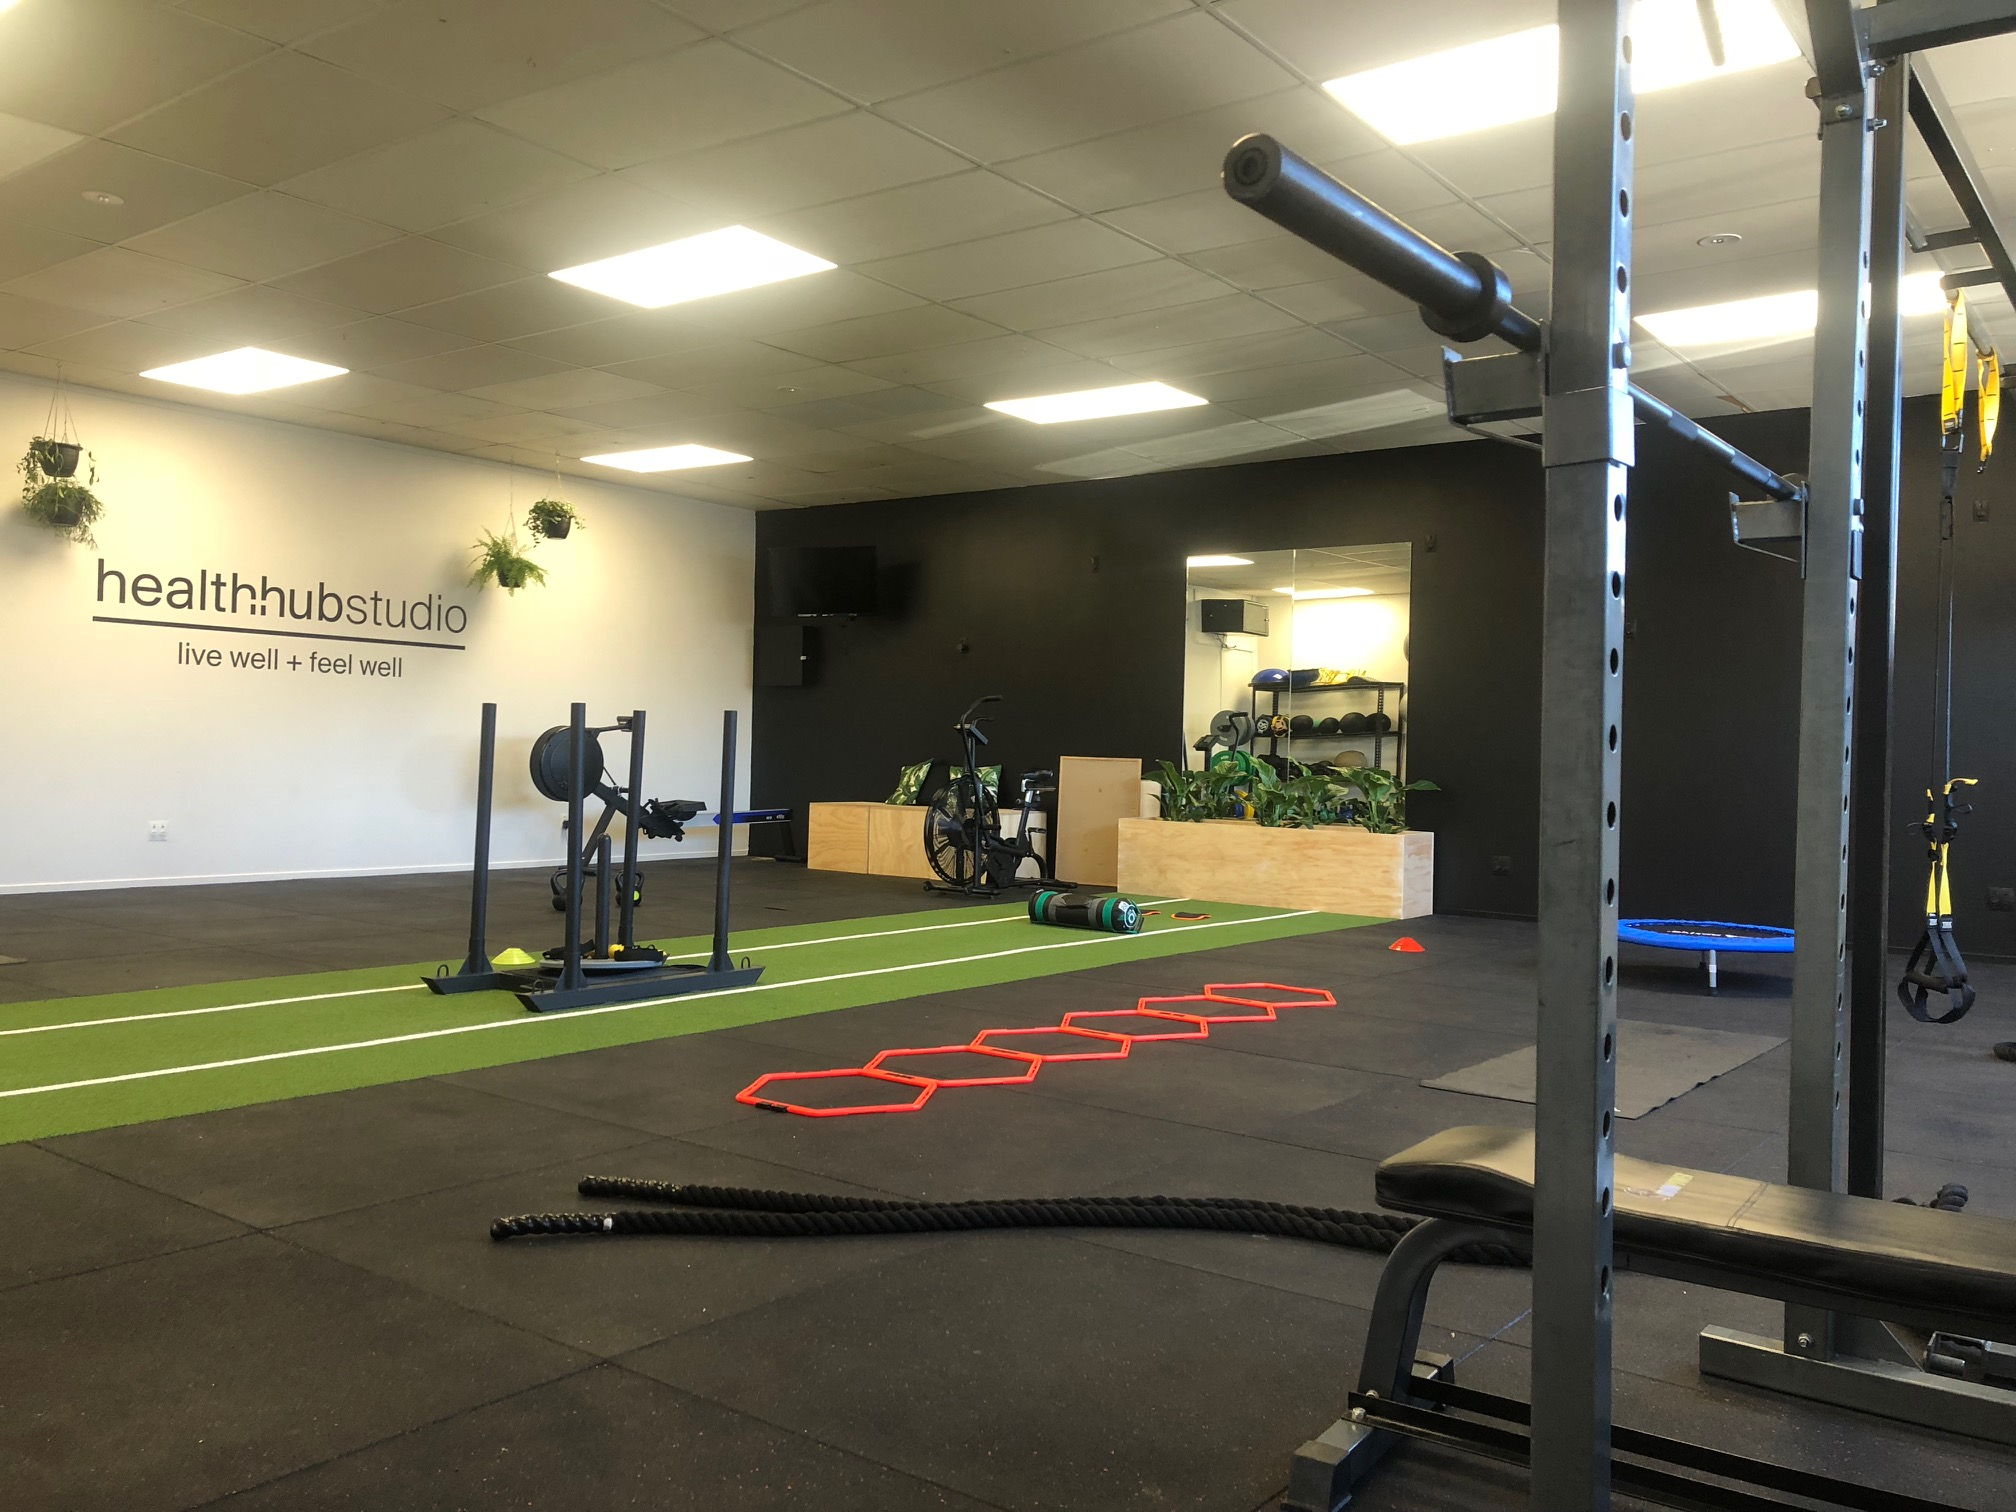 Services - By combining our strengths and passions, we bring you a variety of services.Unlike other gyms, we do not offer memberships. Our aim is to make our services exclusive and personal, giving you the best chance of gaining back your health and allowing you to achieve your goals without the distraction of others.